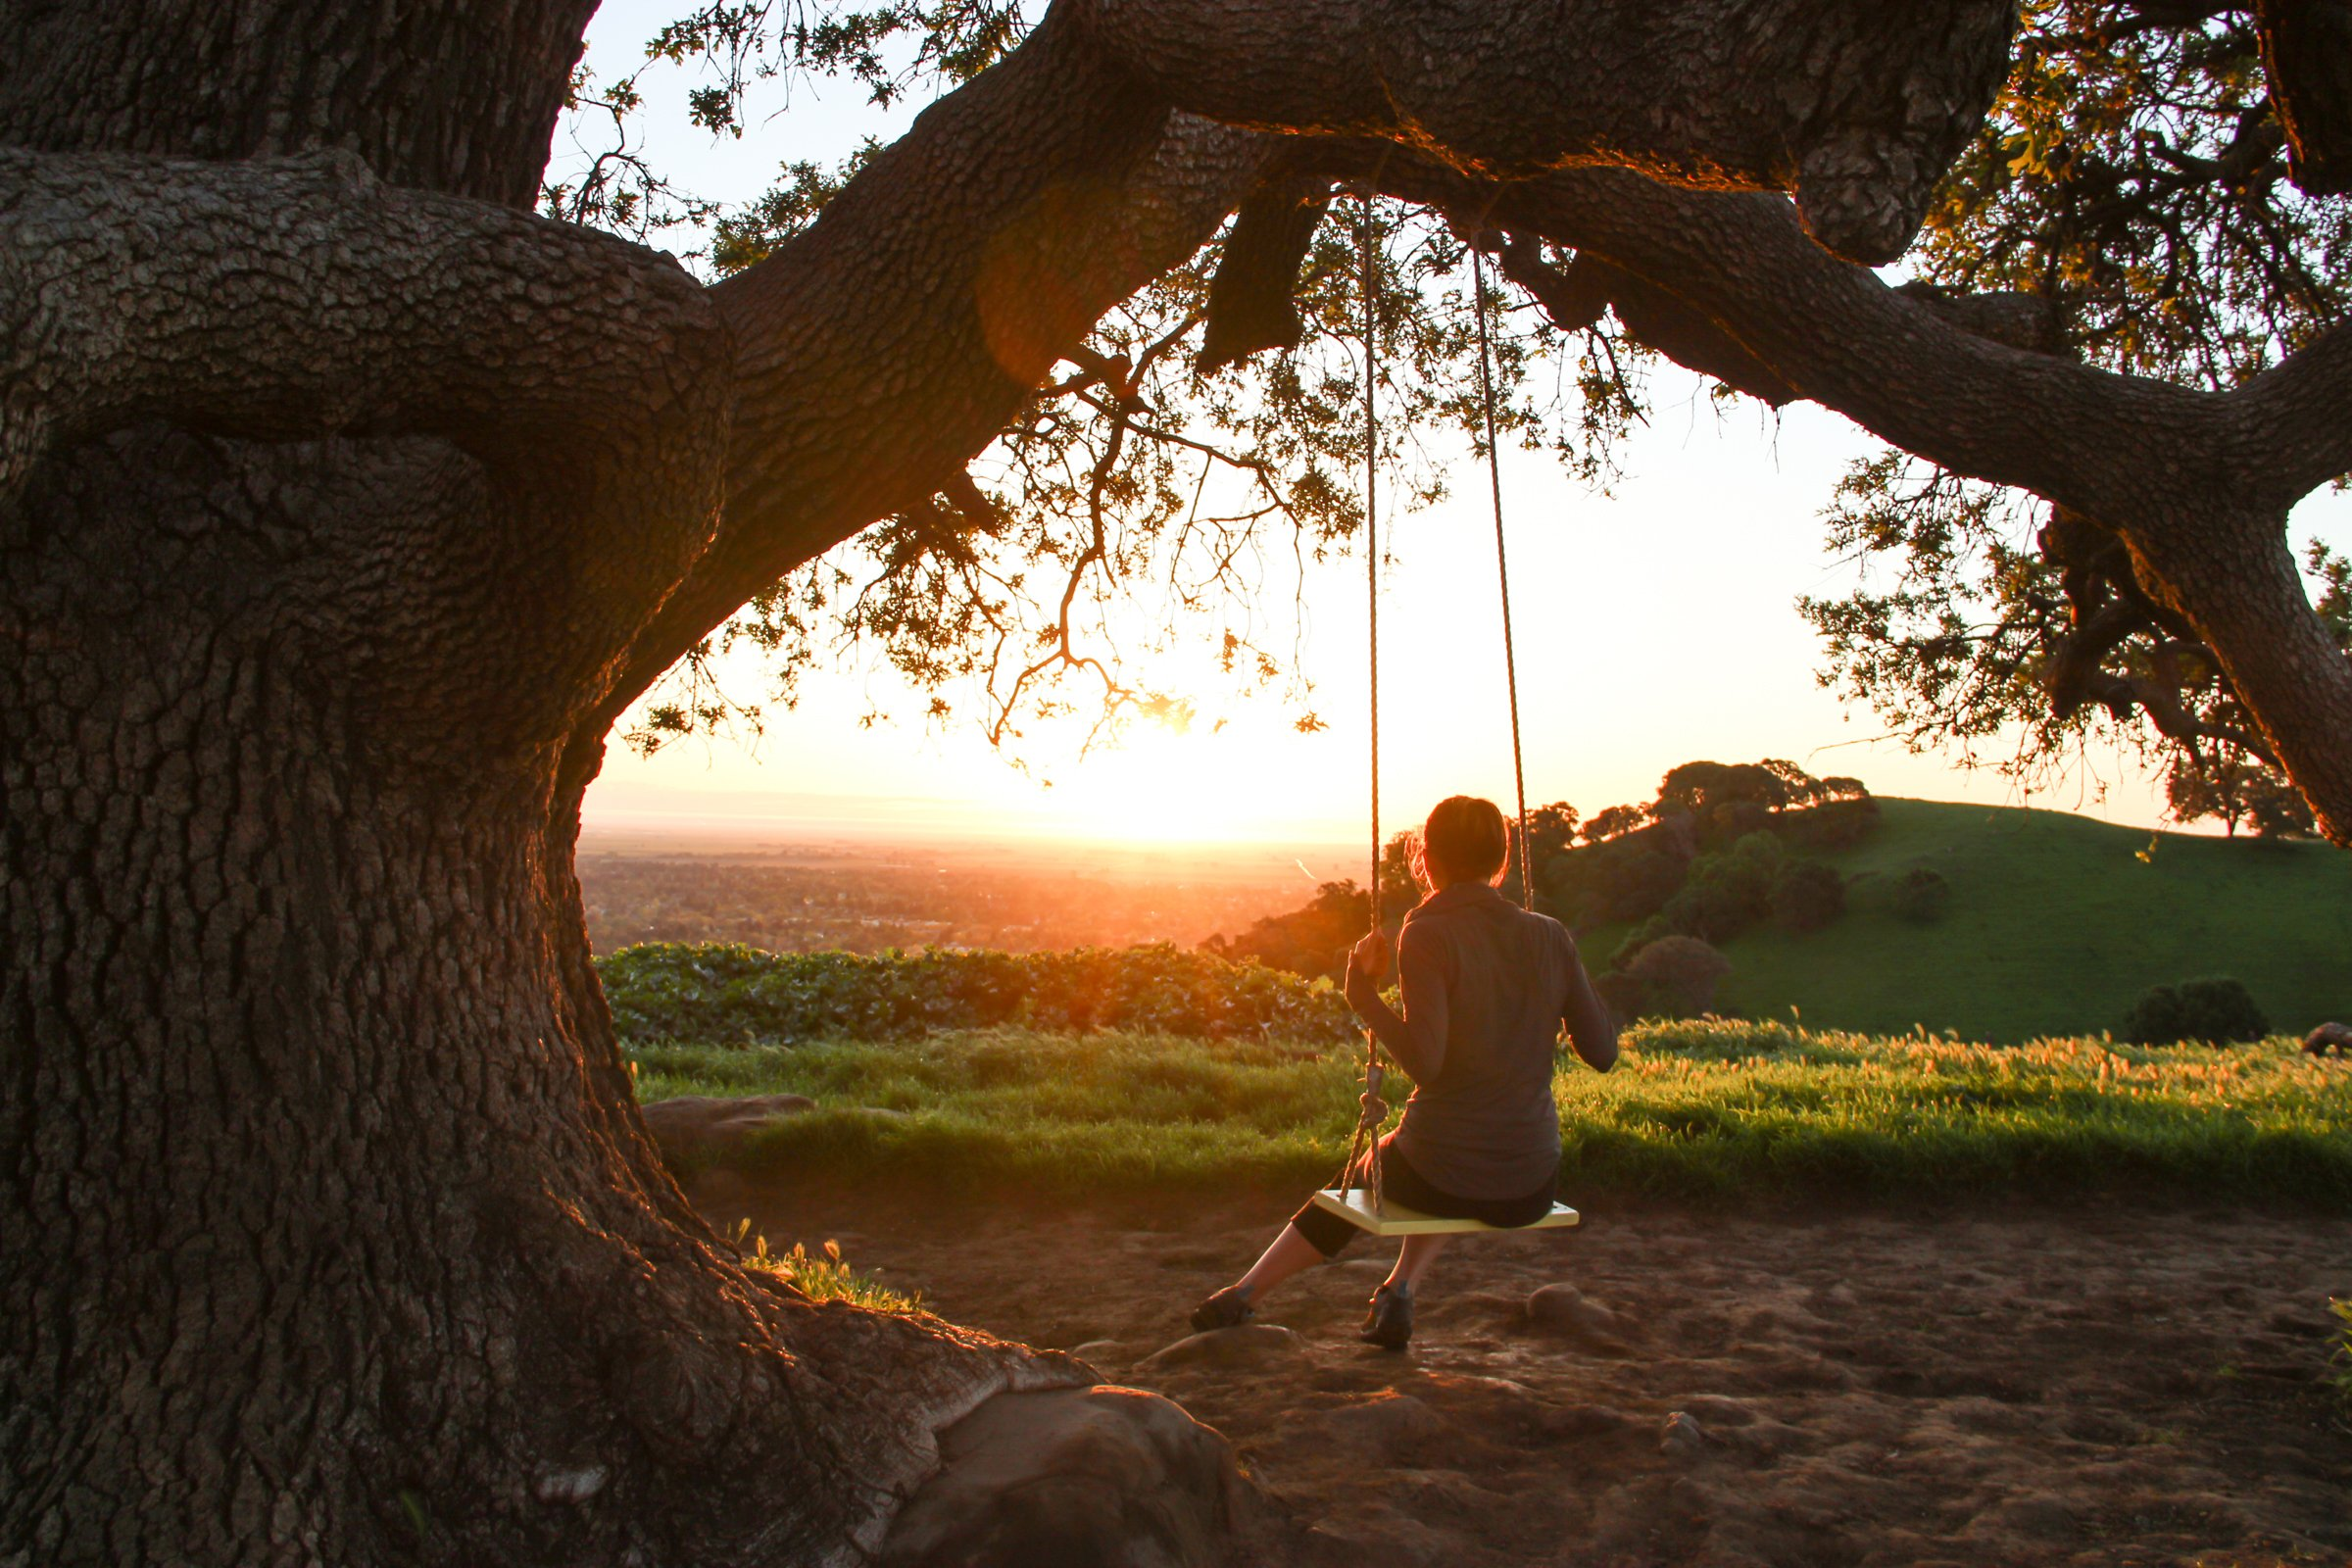 Girl on Swing Under Tree Watching Sunrise